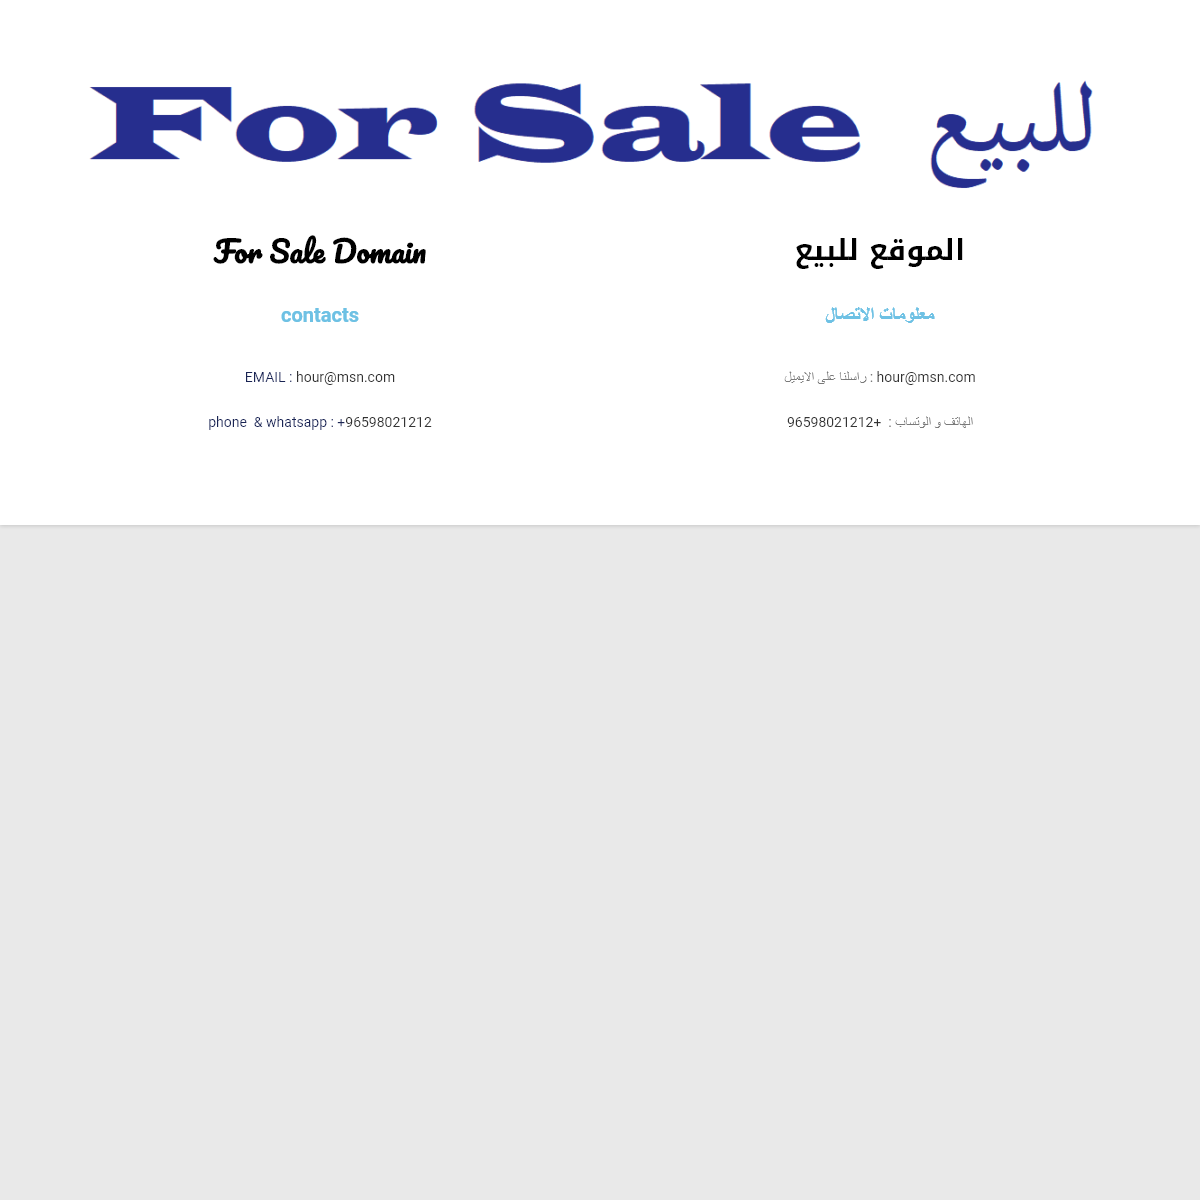 For Sale Domain – email- hour@msn.com , Phone & Whatsapp- +96598021212